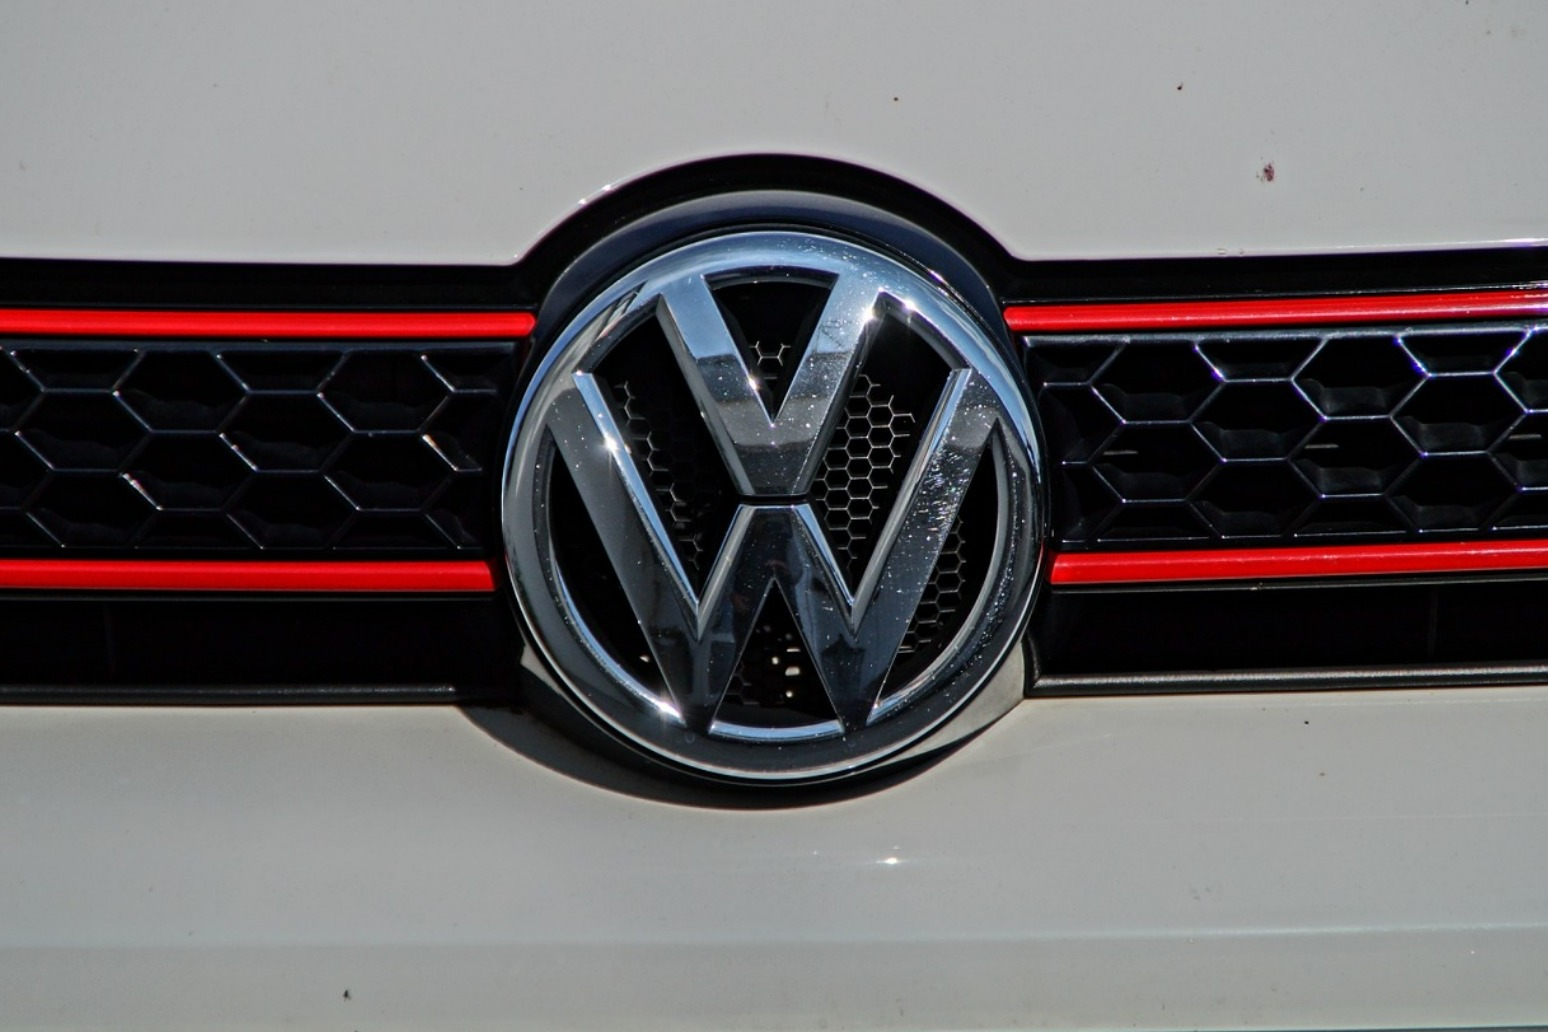 Concerns over VW handling of seatbelt issue